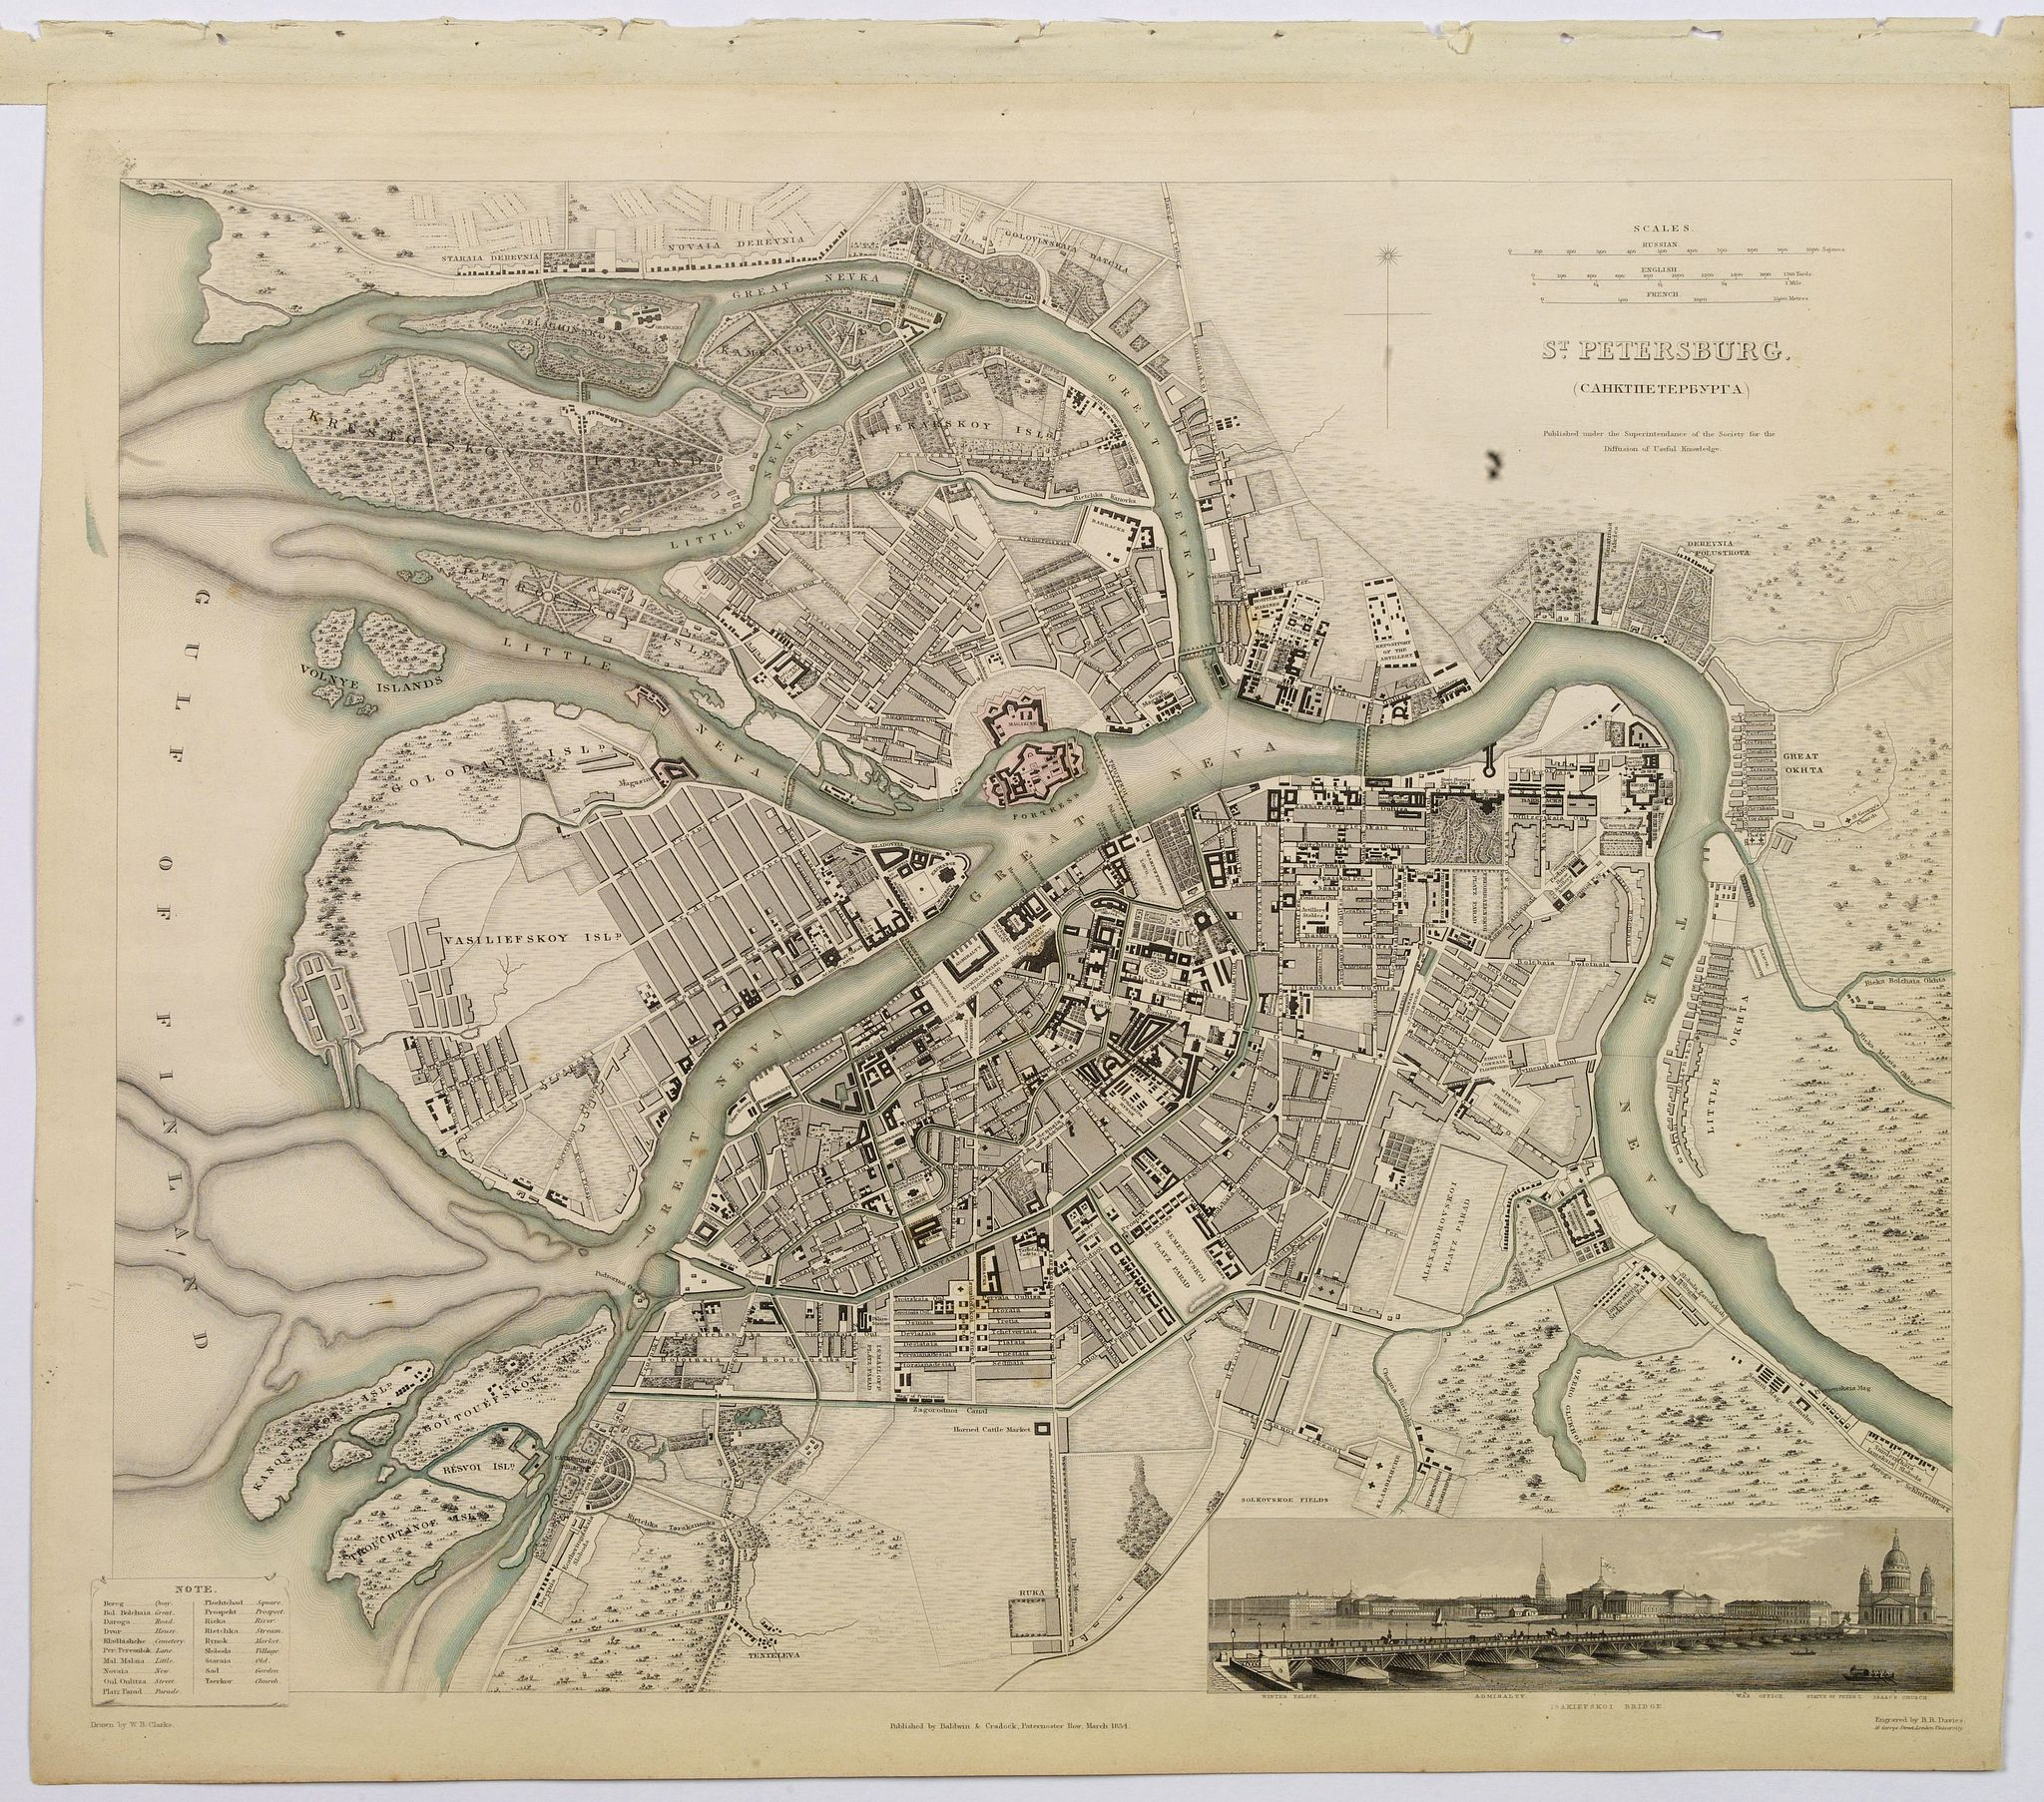 SOCIETY FOR THE DIFFUSION OF USEFUL KNOWLEDGE., St. Petersburg., antique map, old maps